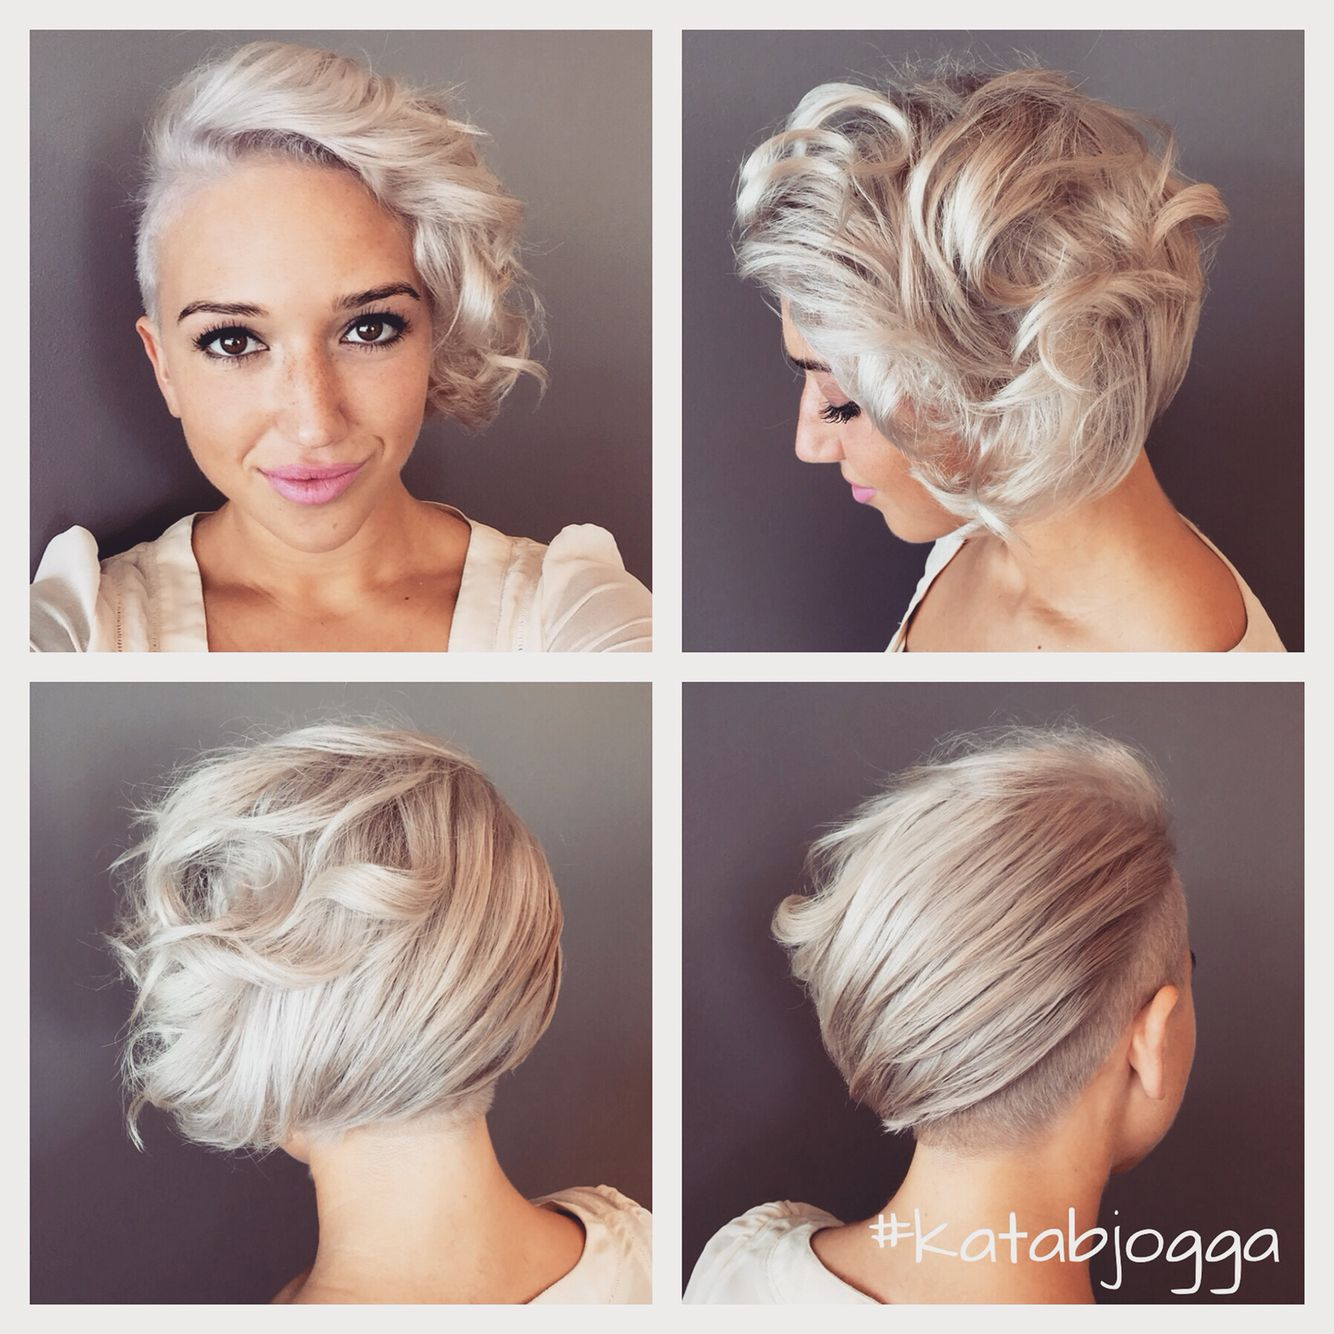 Silver Short Hair With Undercut And Curls Amazing Undercut Hairstyles Short Hair Undercut Short Hair Styles